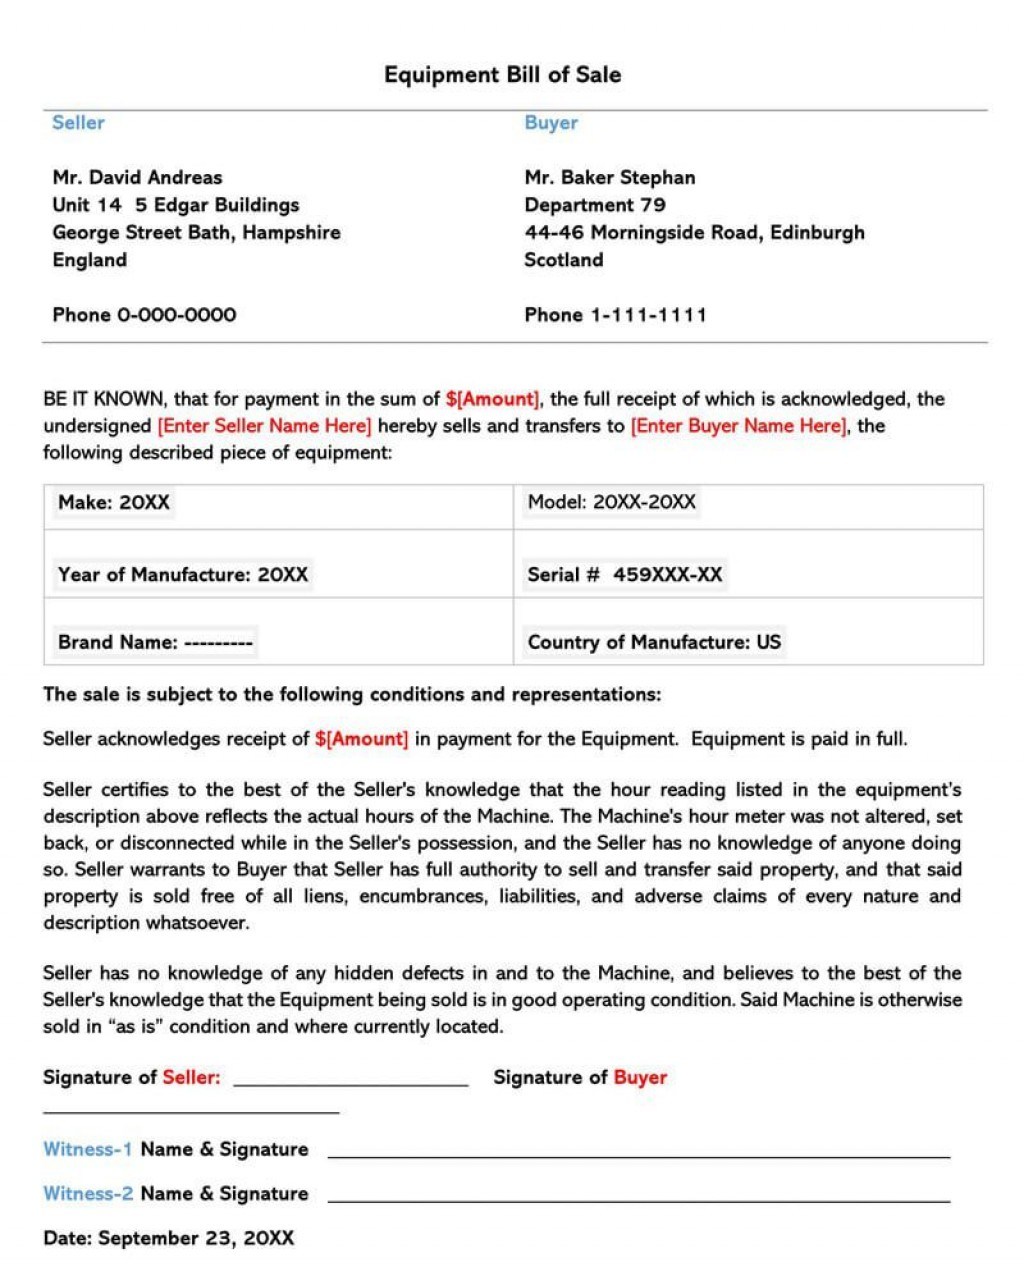 004 Magnificent Equipment Bill Of Sale Form Design  Forms Word Document Alberta Simple TemplateLarge